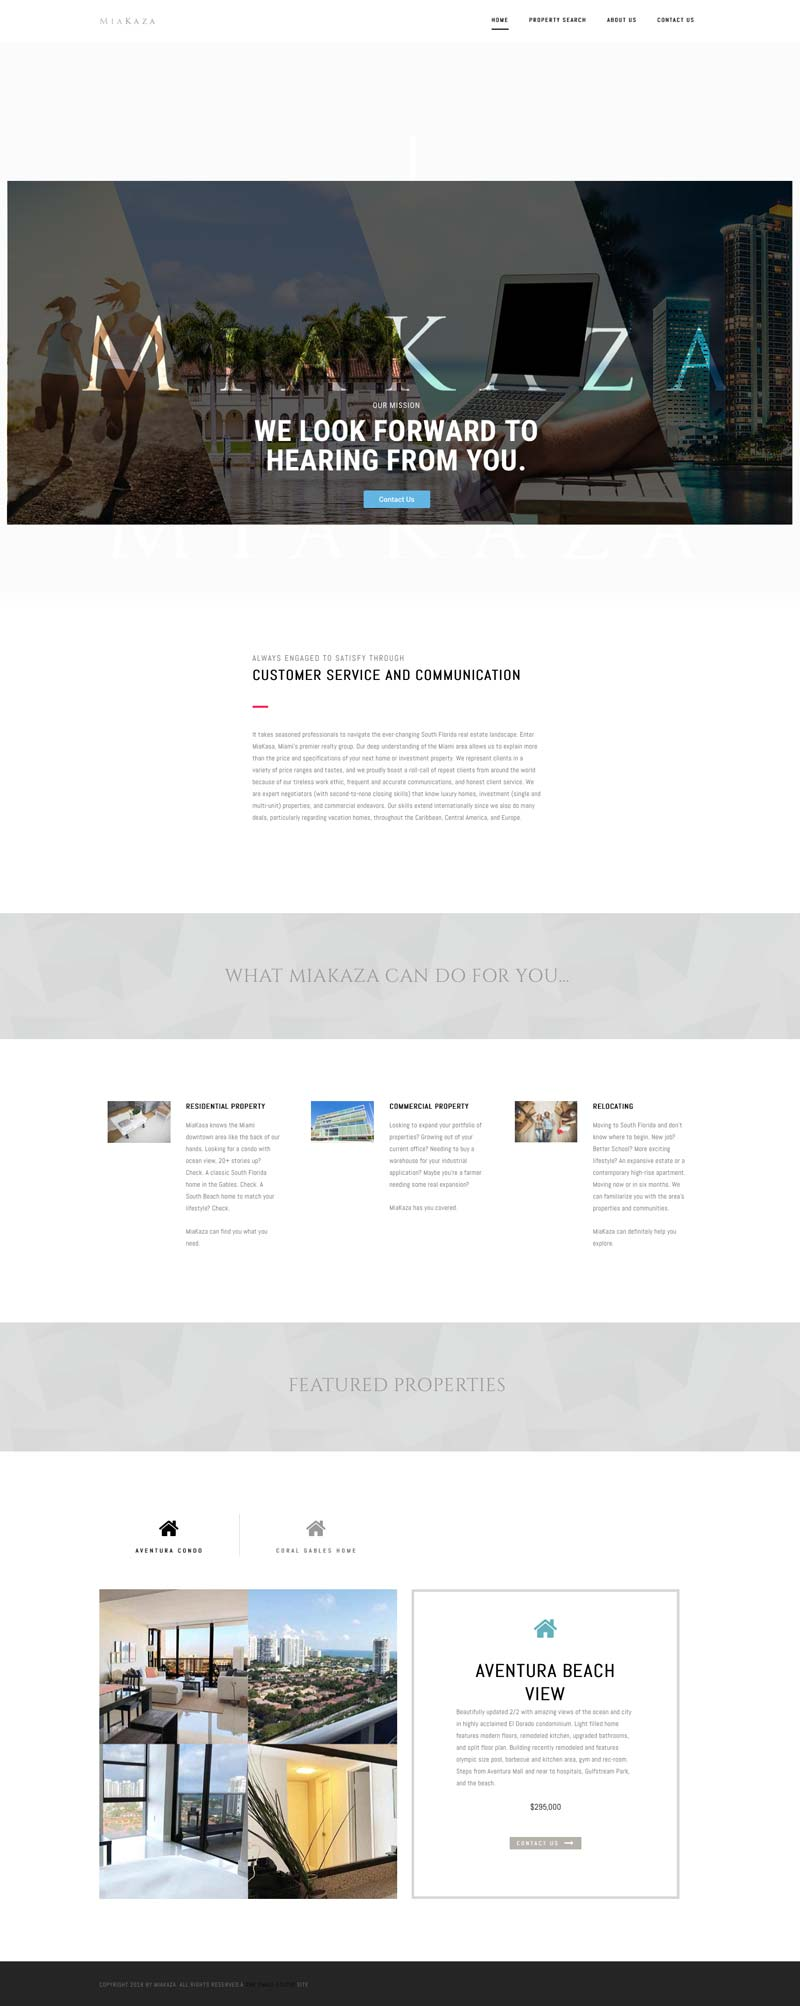 Realtor team website and brand design for MiaKaza. Home page.